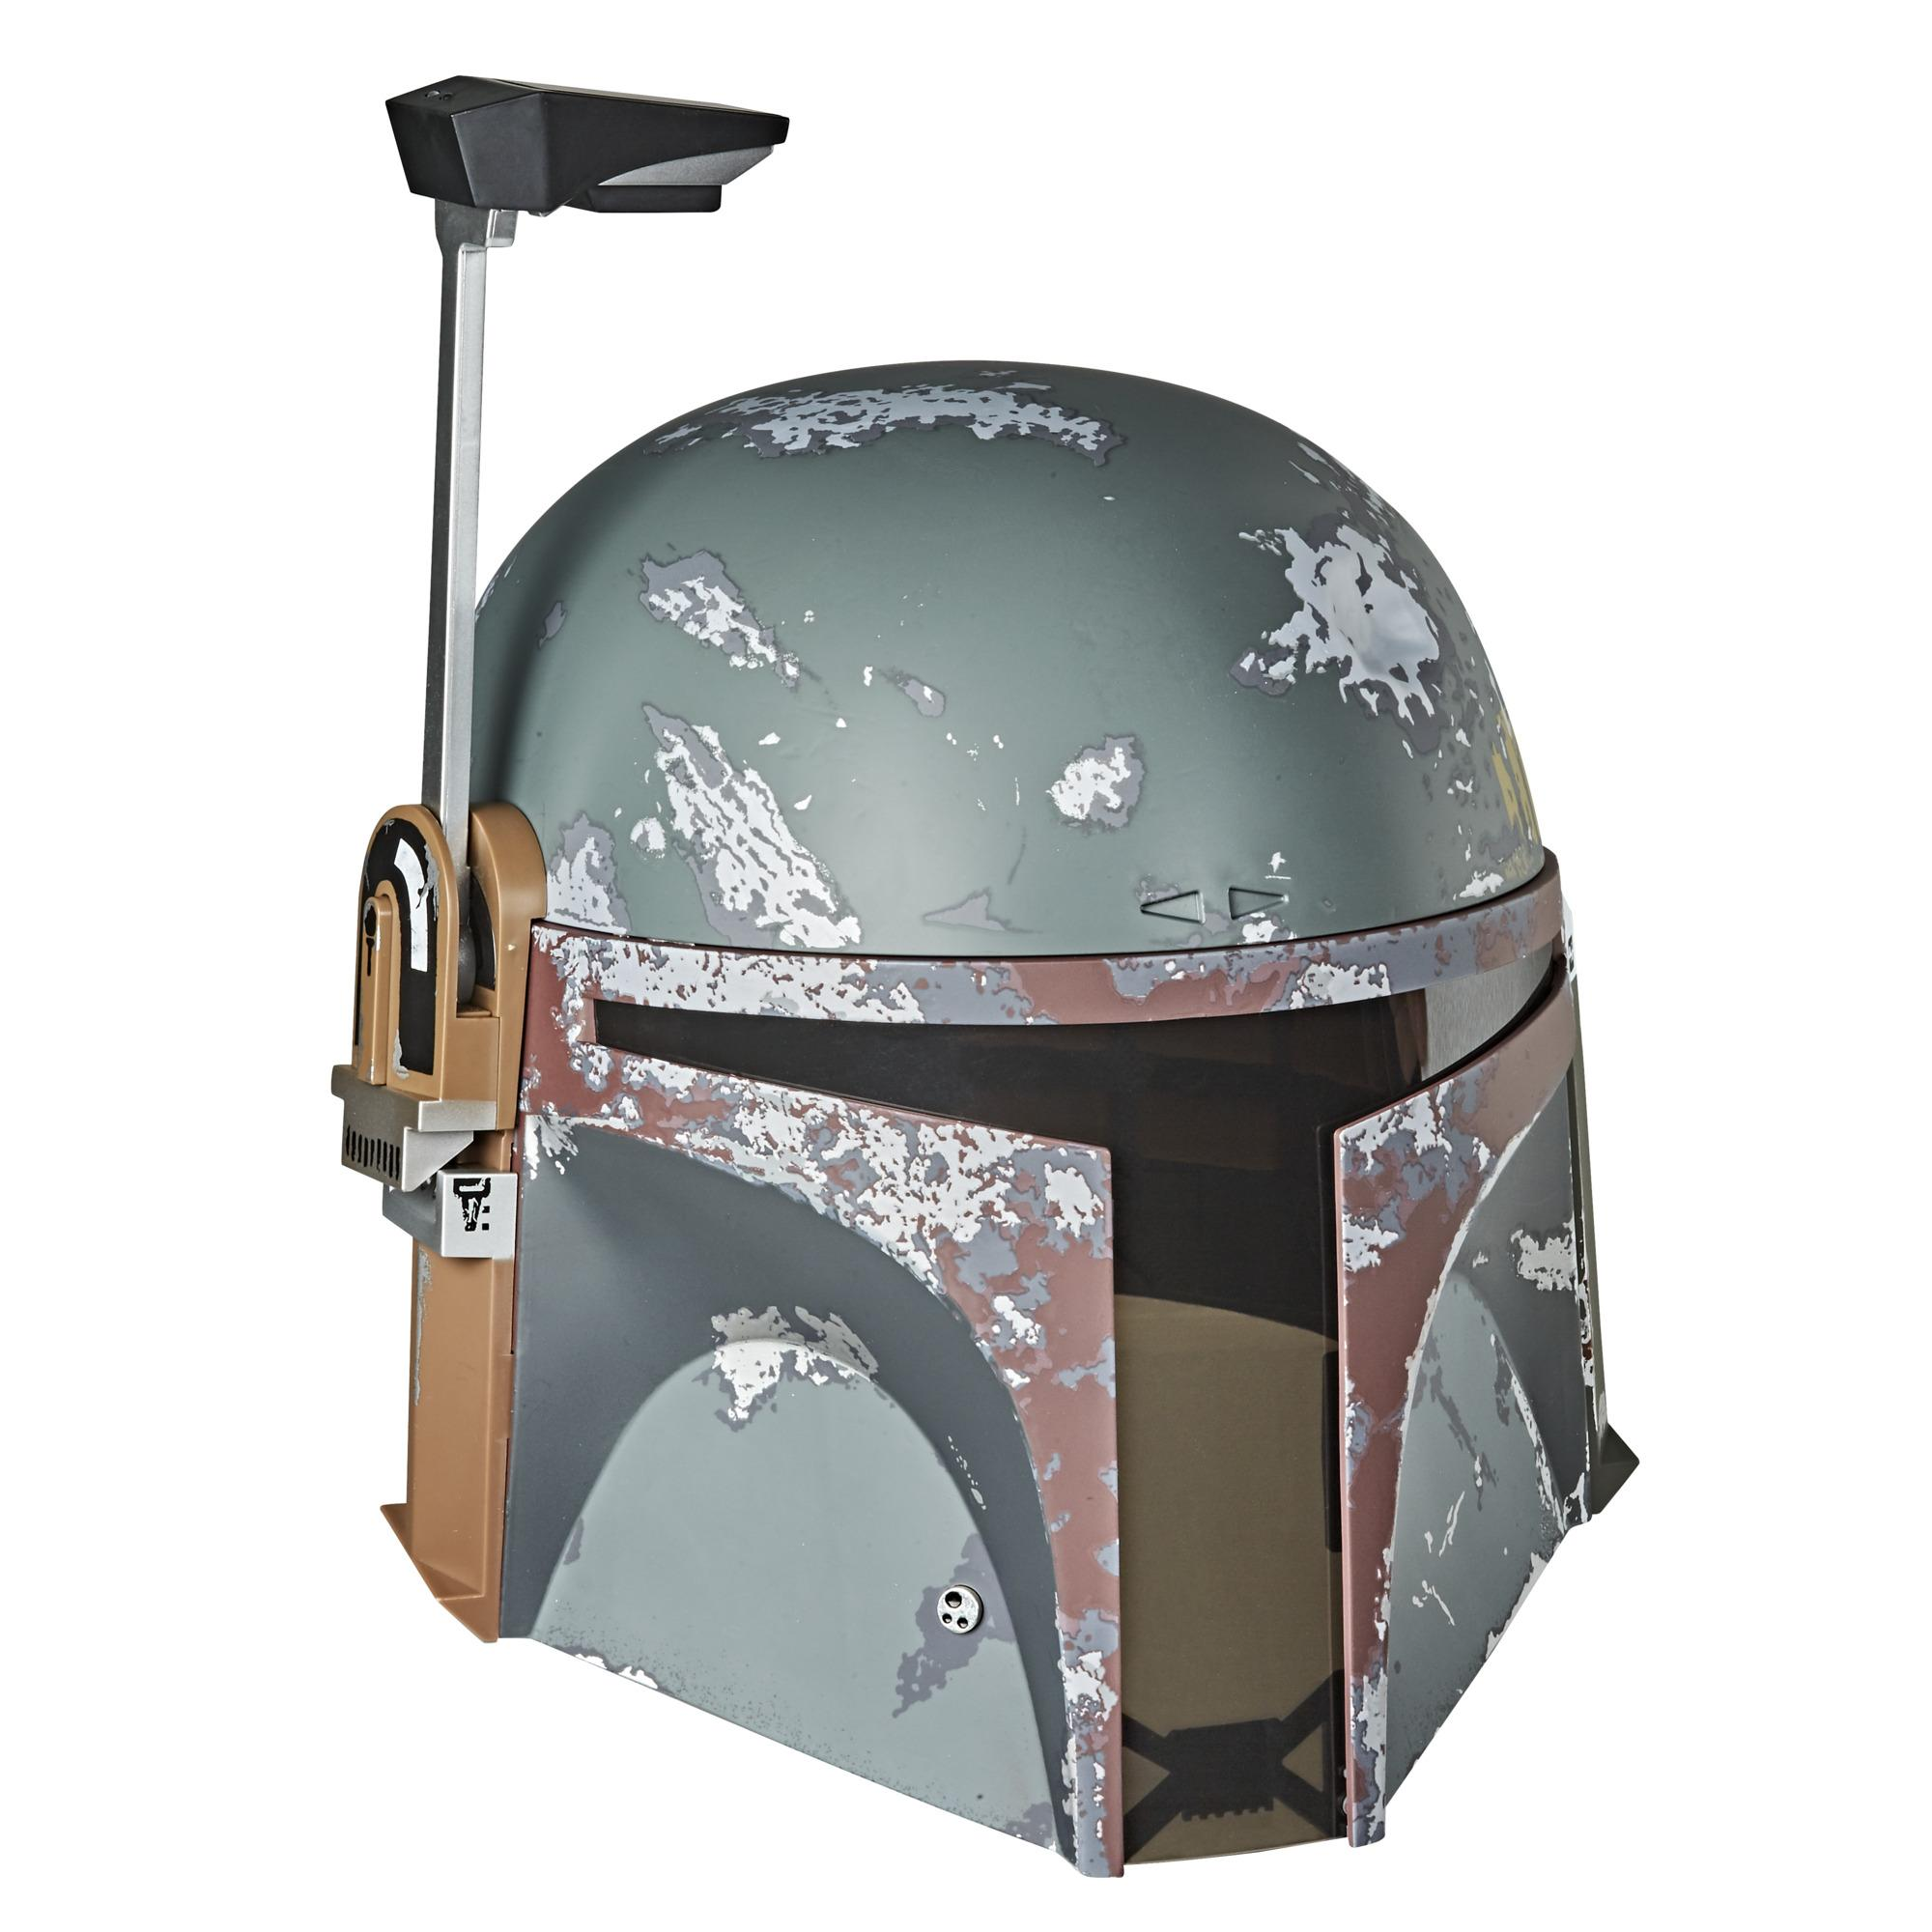 Star Wars The Black Series Boba Fett Premium Electronic Helmet, Star Wars: The Empire Strikes Back Roleplay Helmet